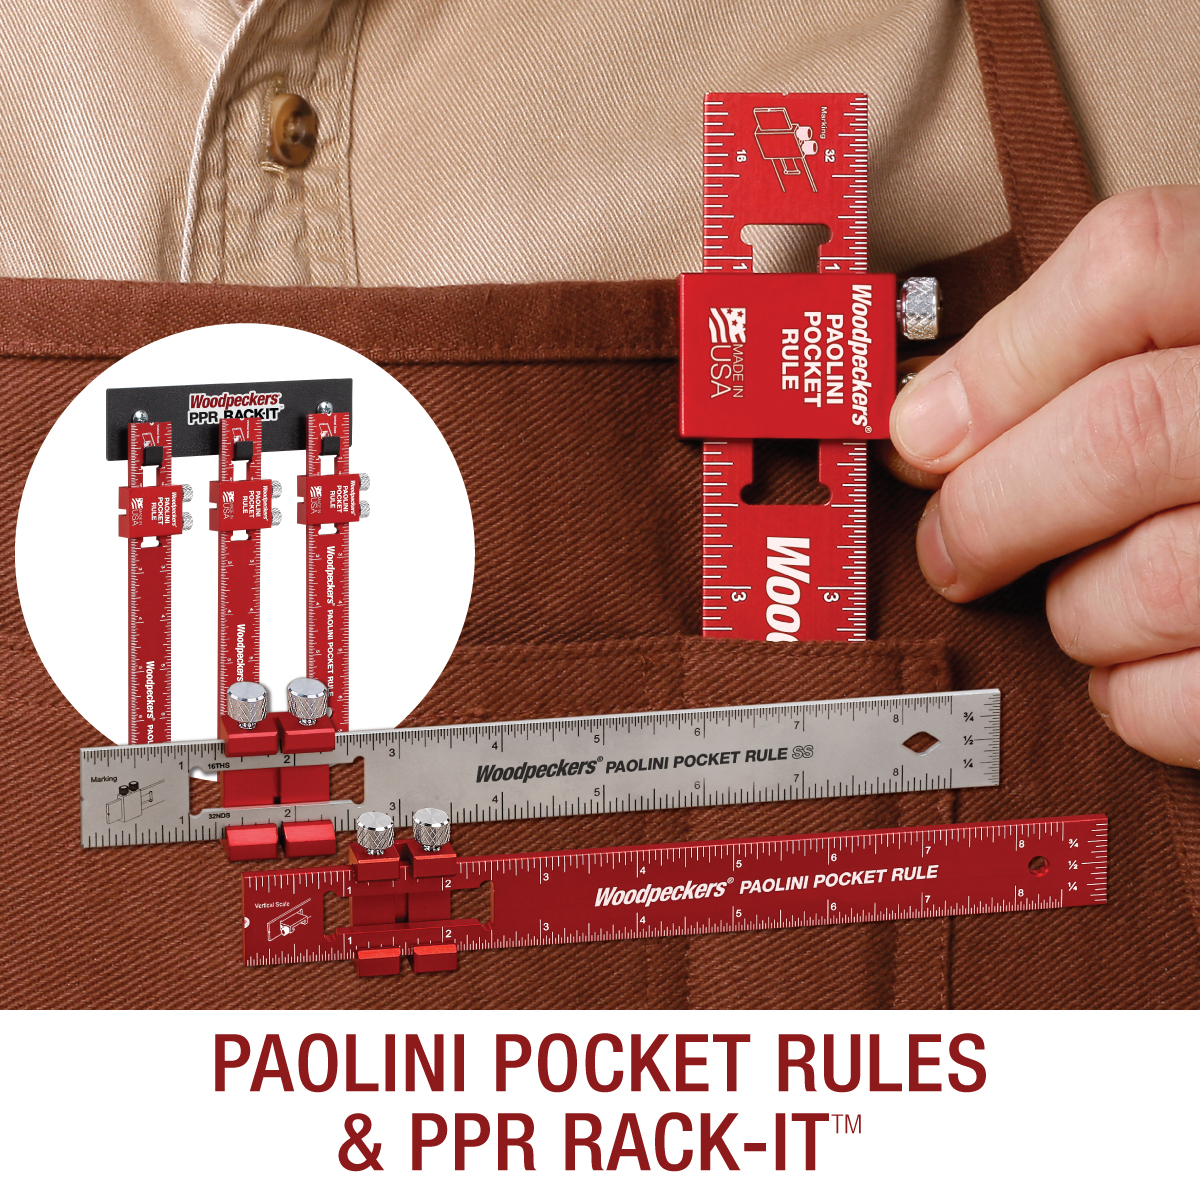 paolini pocket measuring ruler